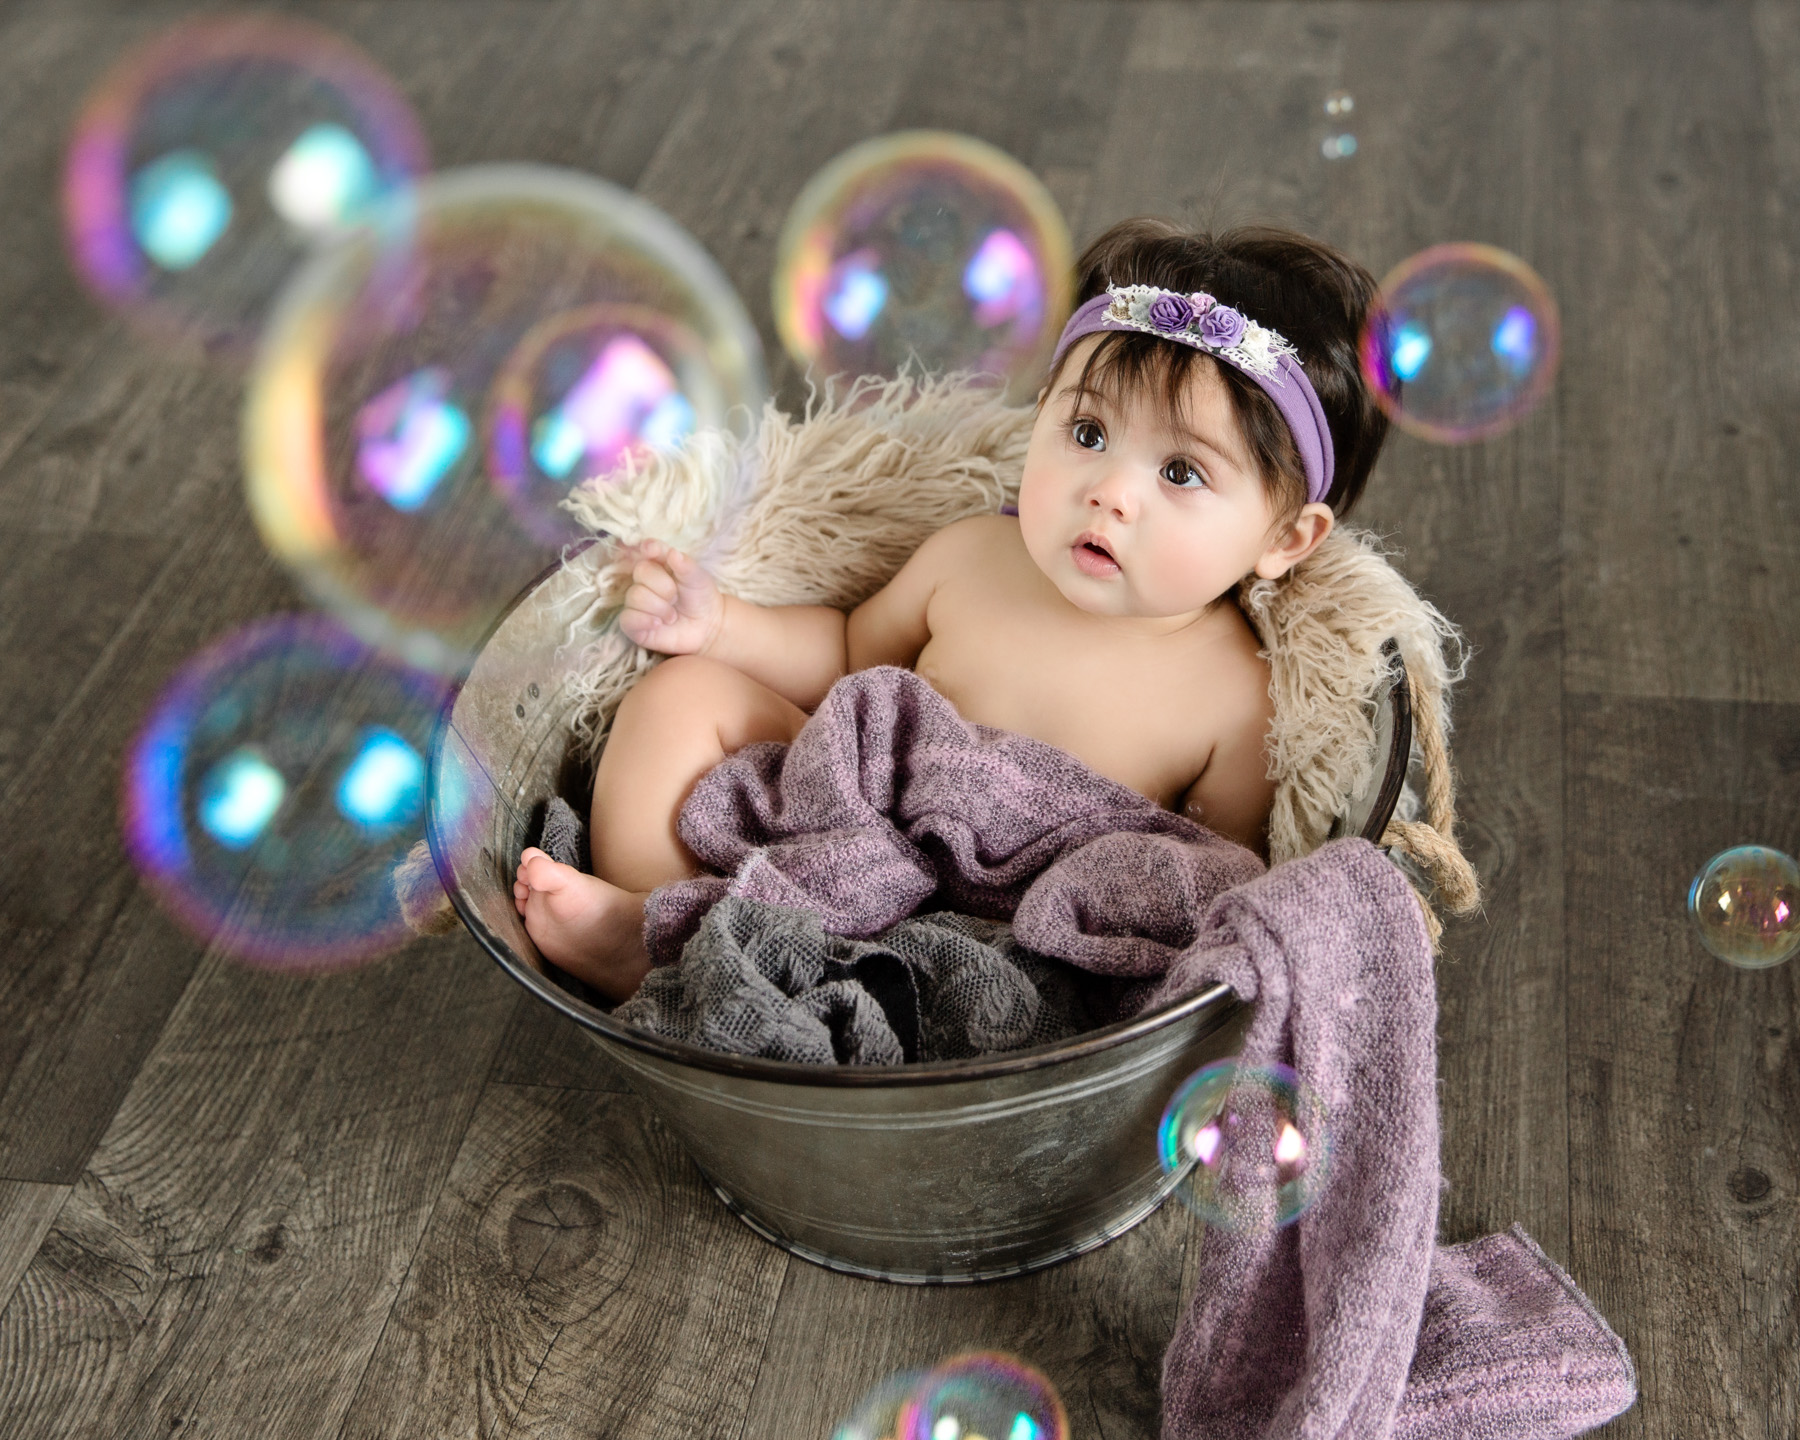 6 month old girl looking at bubbles